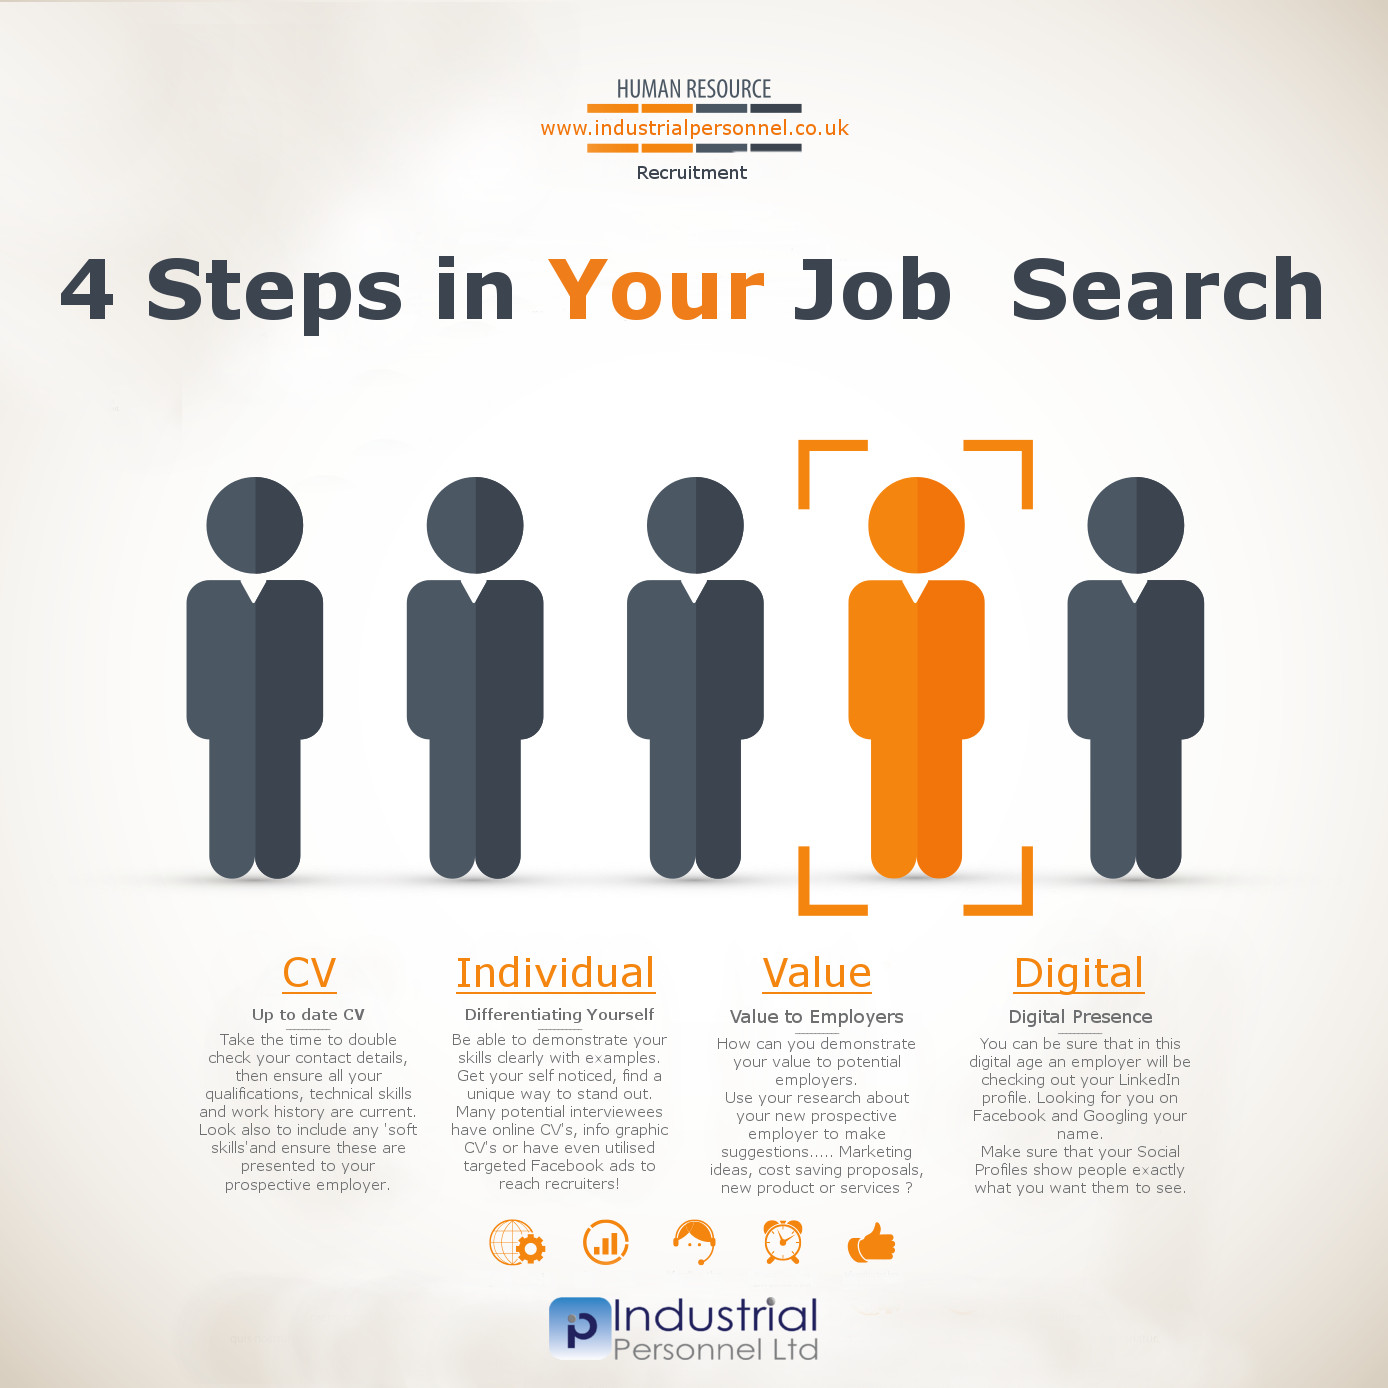 Job Search, 4 Steps in Your Search